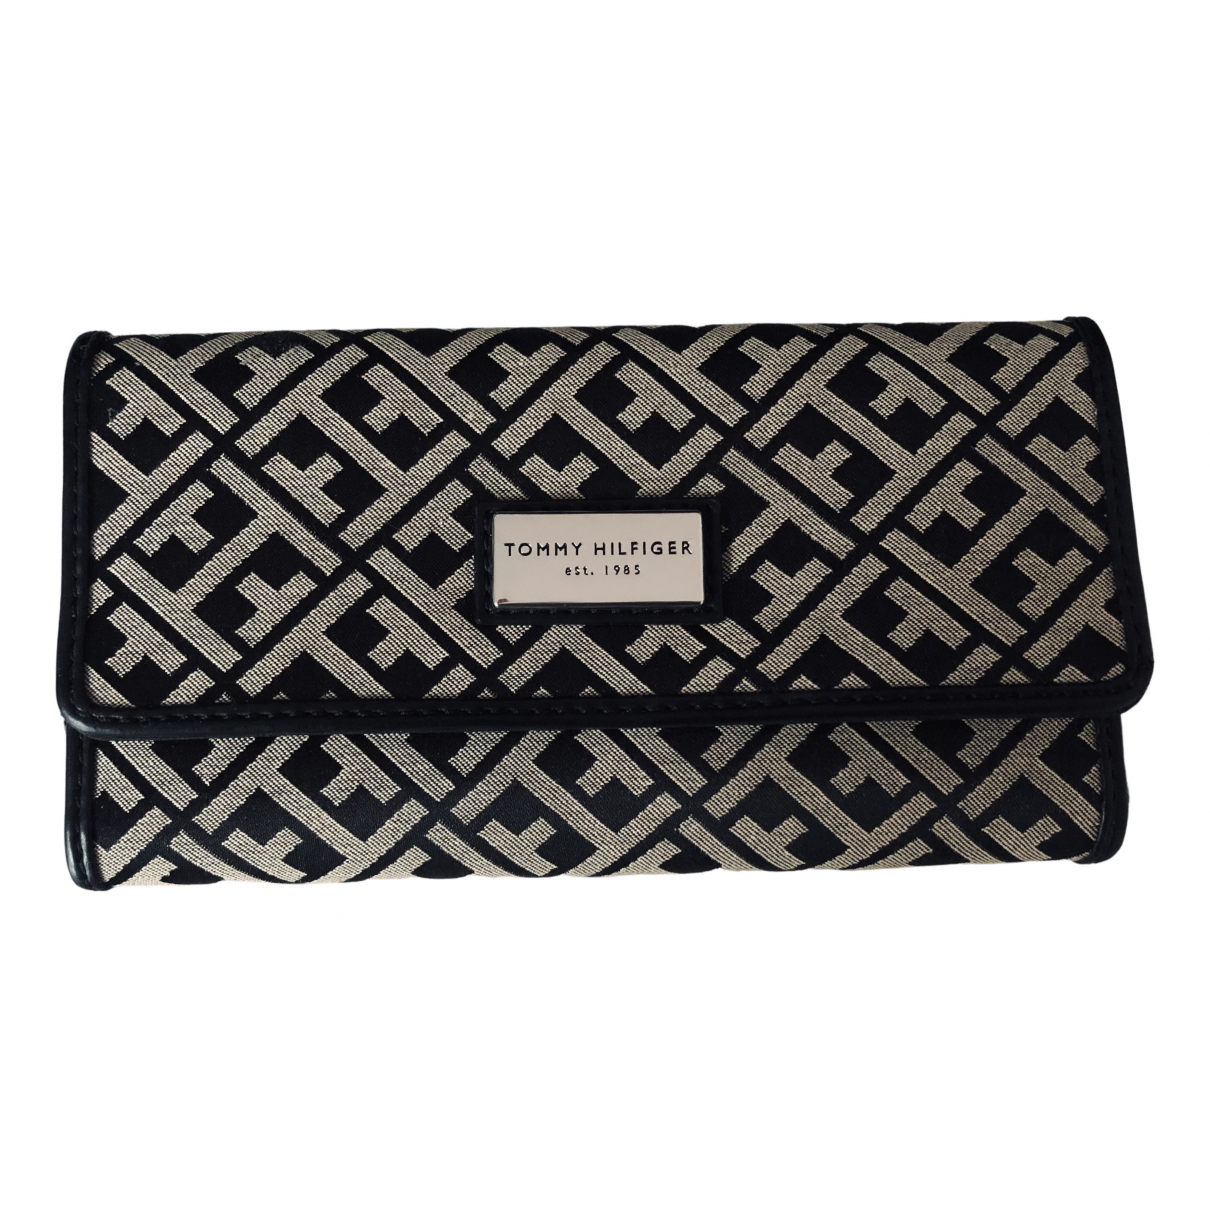 Tommy Hilfiger N Leather wallet for Women N